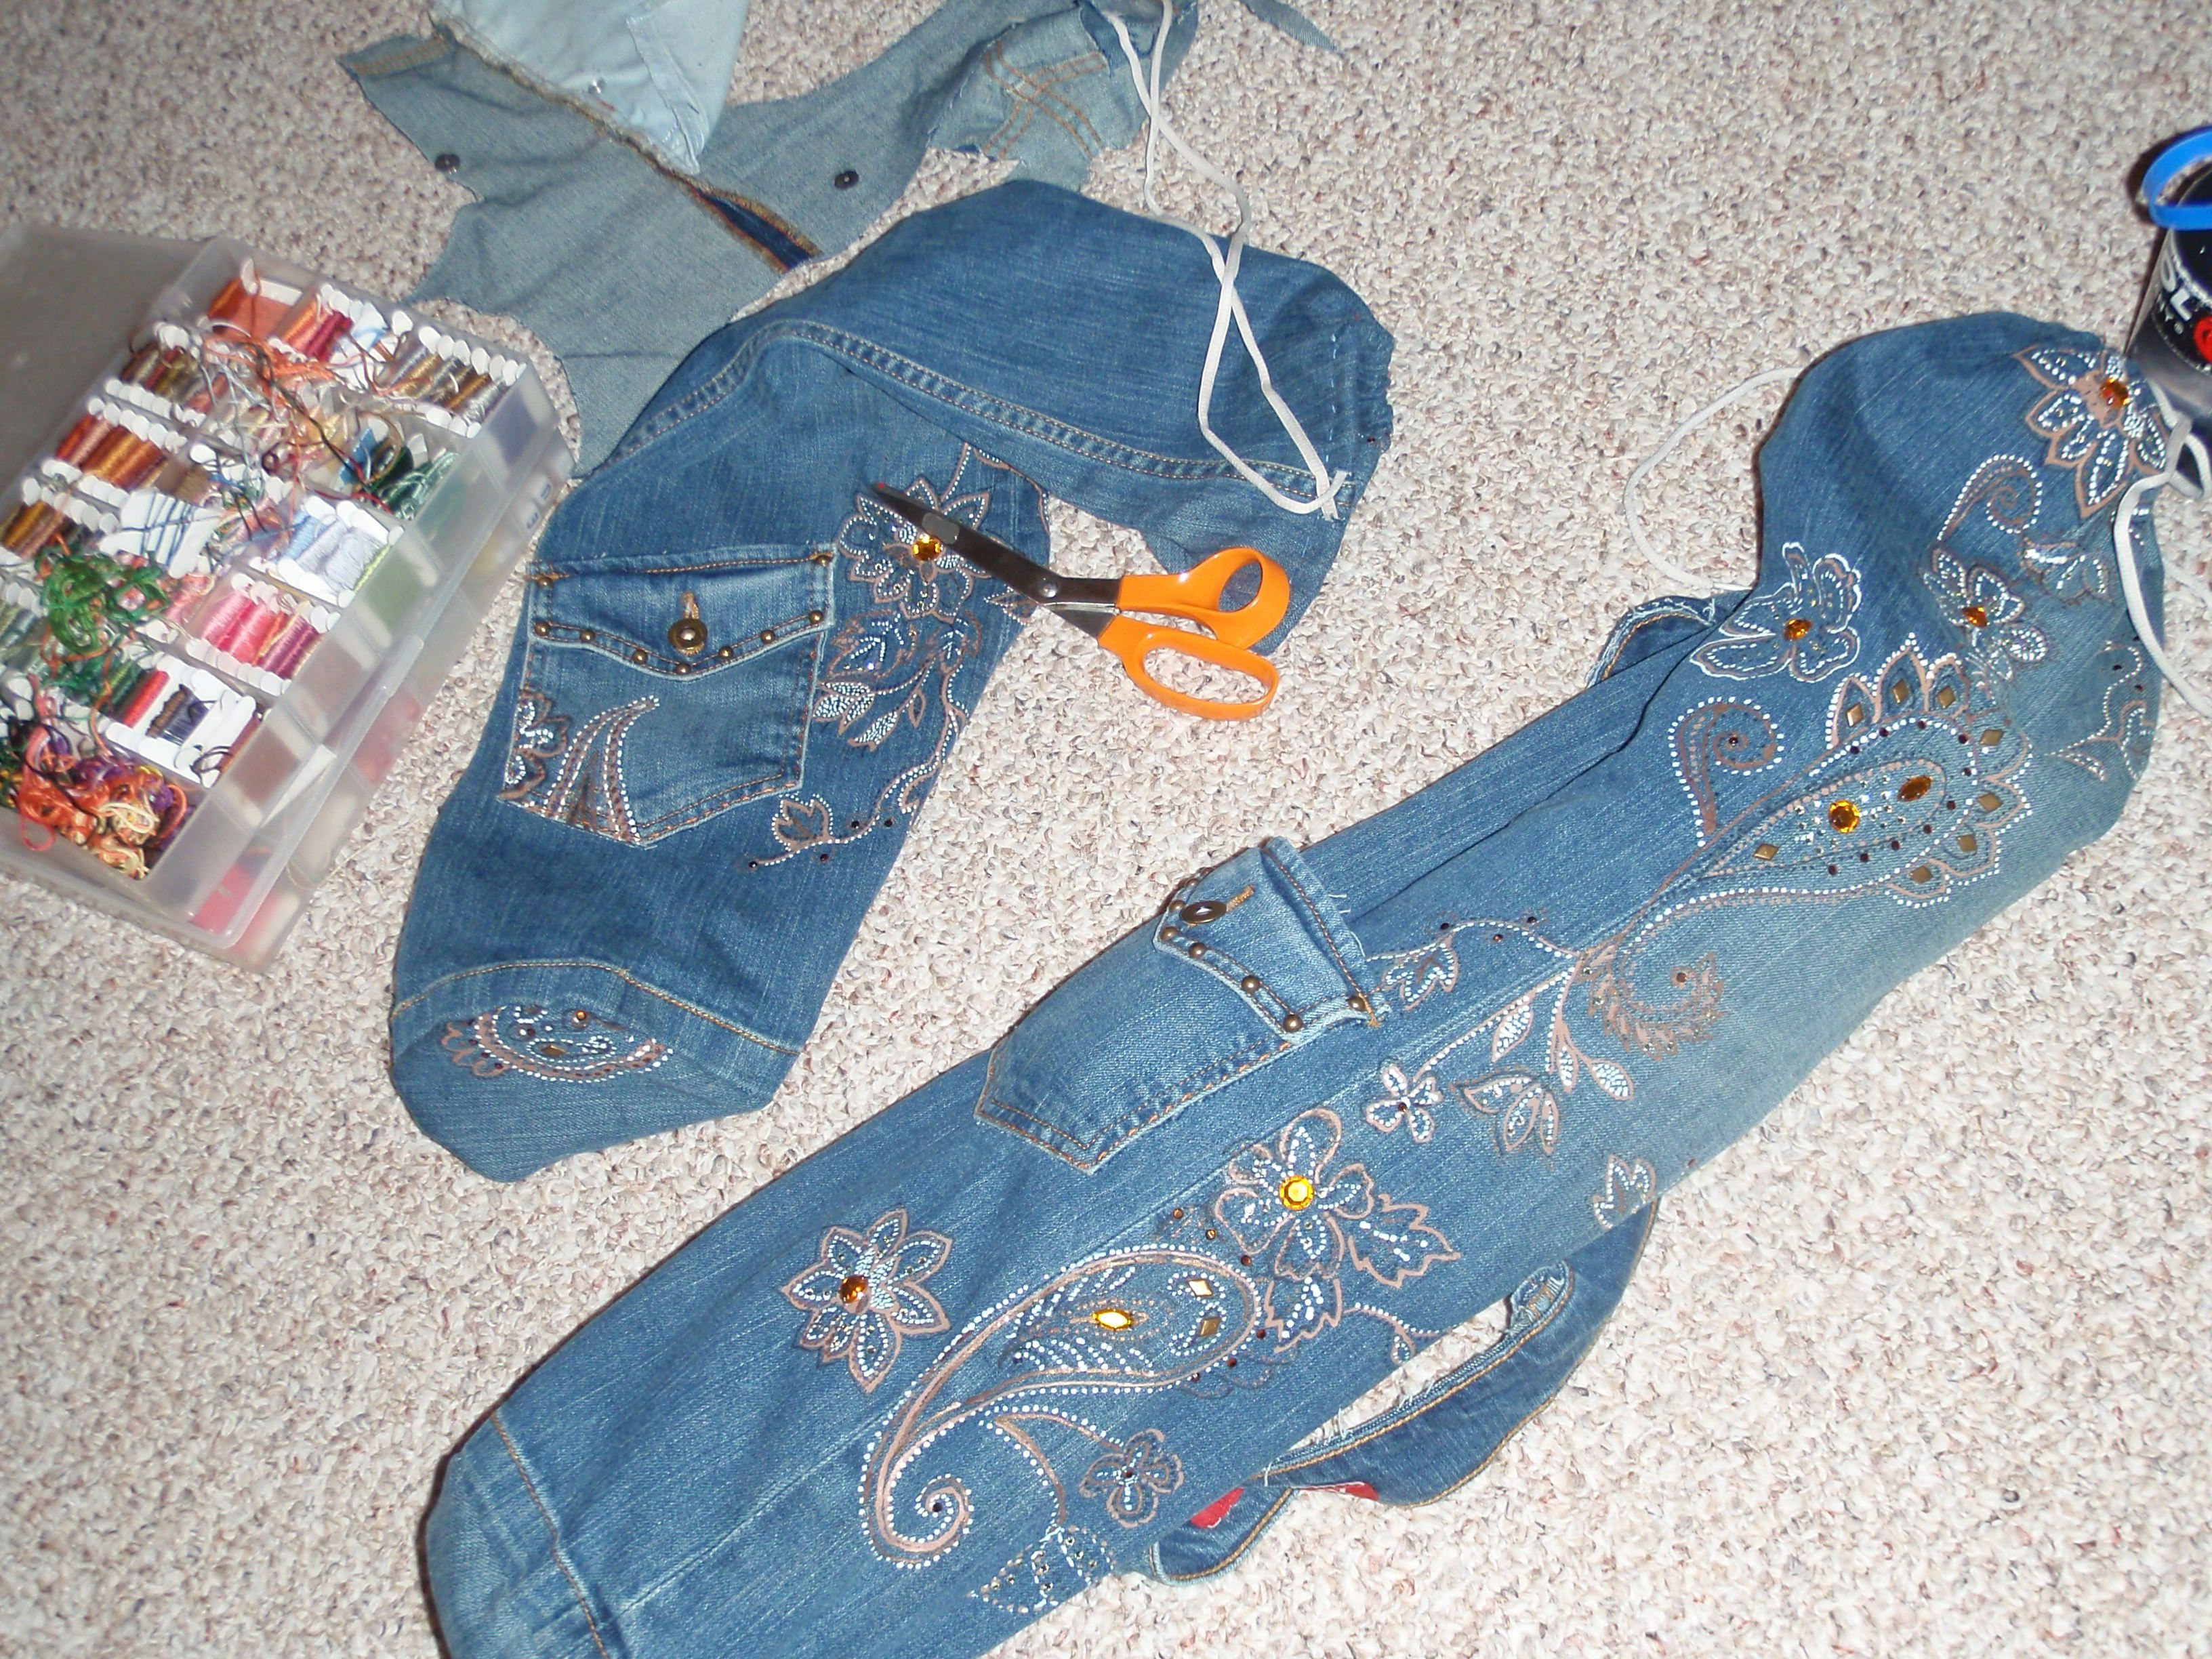 66c6205da2aa I used an old pair of jeans to make two yoga bags. The waistband of ...